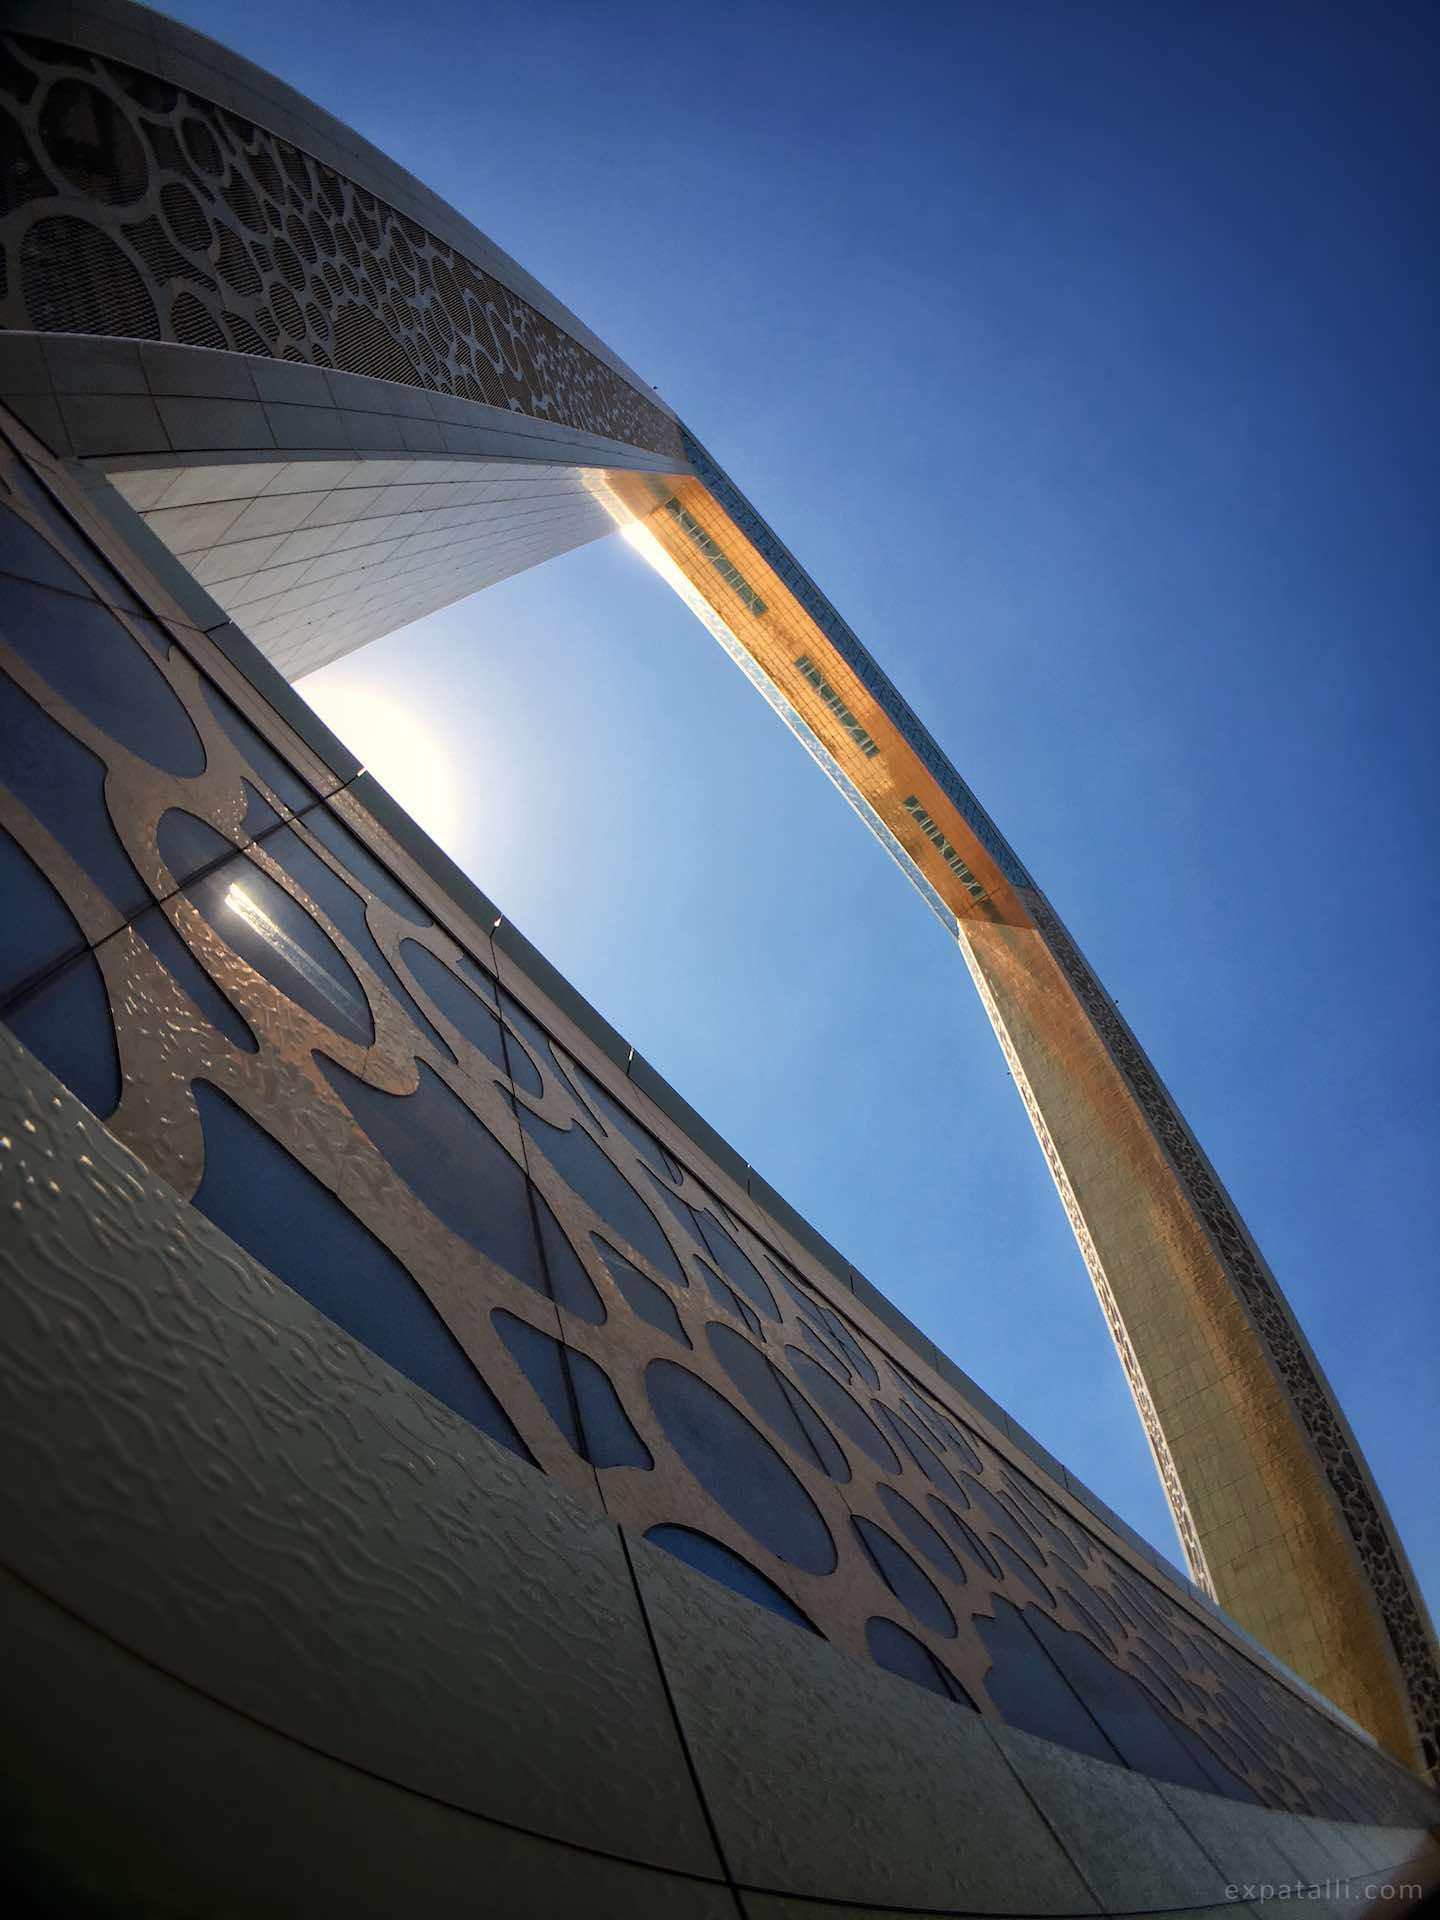 View of the Dubai Frame from below | Image © ExpatAlli.com